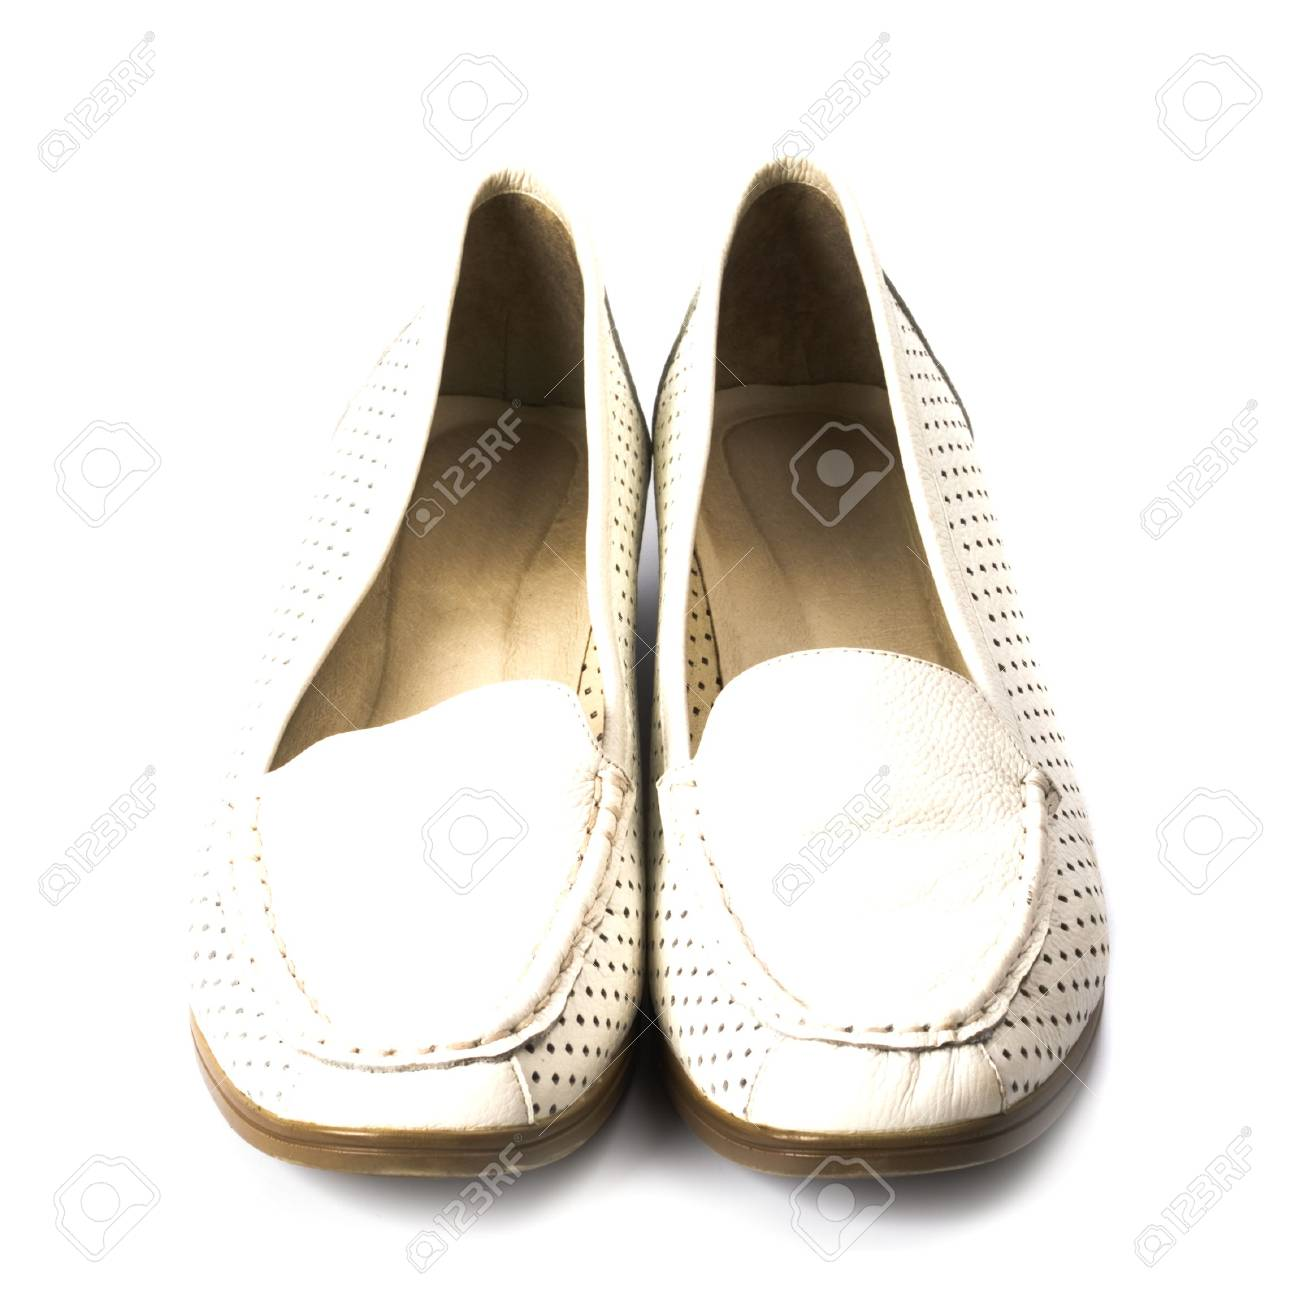 pair of shoes isolated on white background Stock Photo - 6114385